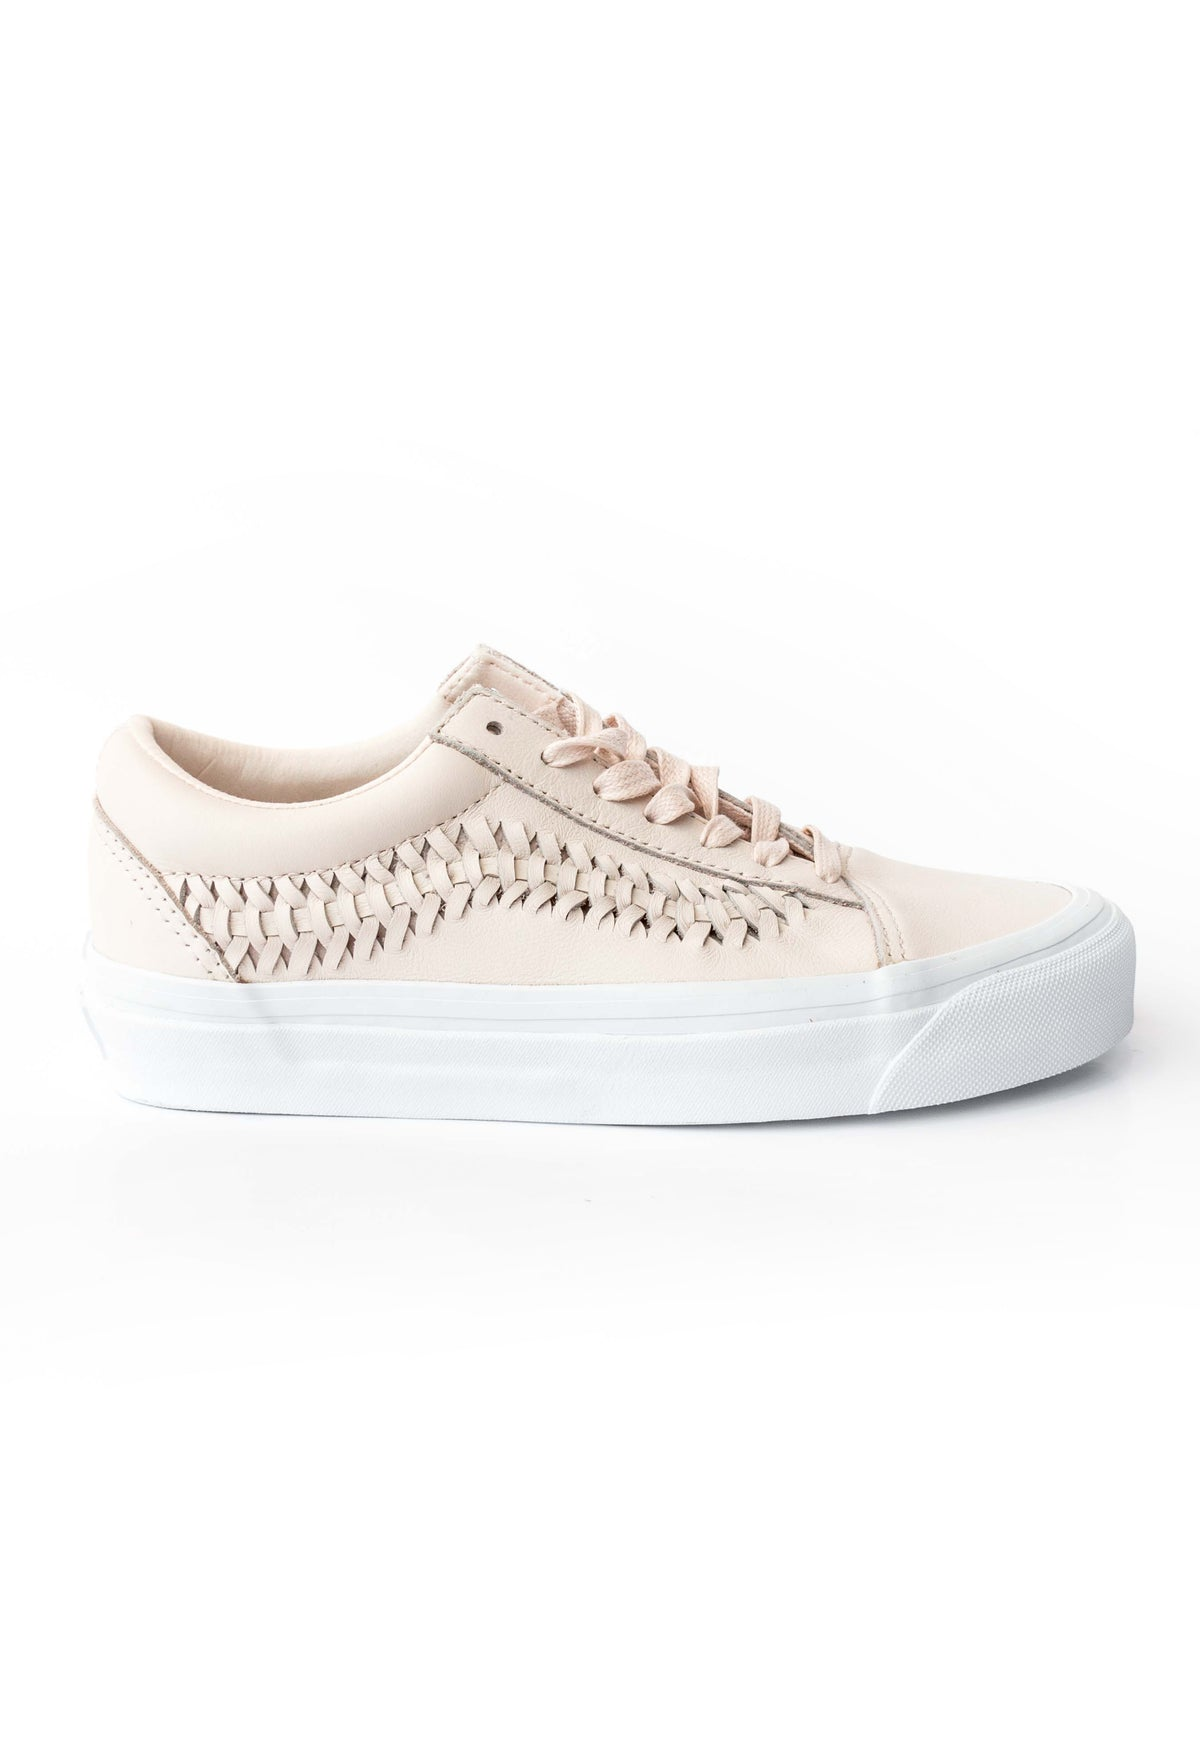 f63dad6a59 Old Skool Weave Pink Leather Vans Stockists New Zealand Buy Online Vans  Skate Shoes Street Lace